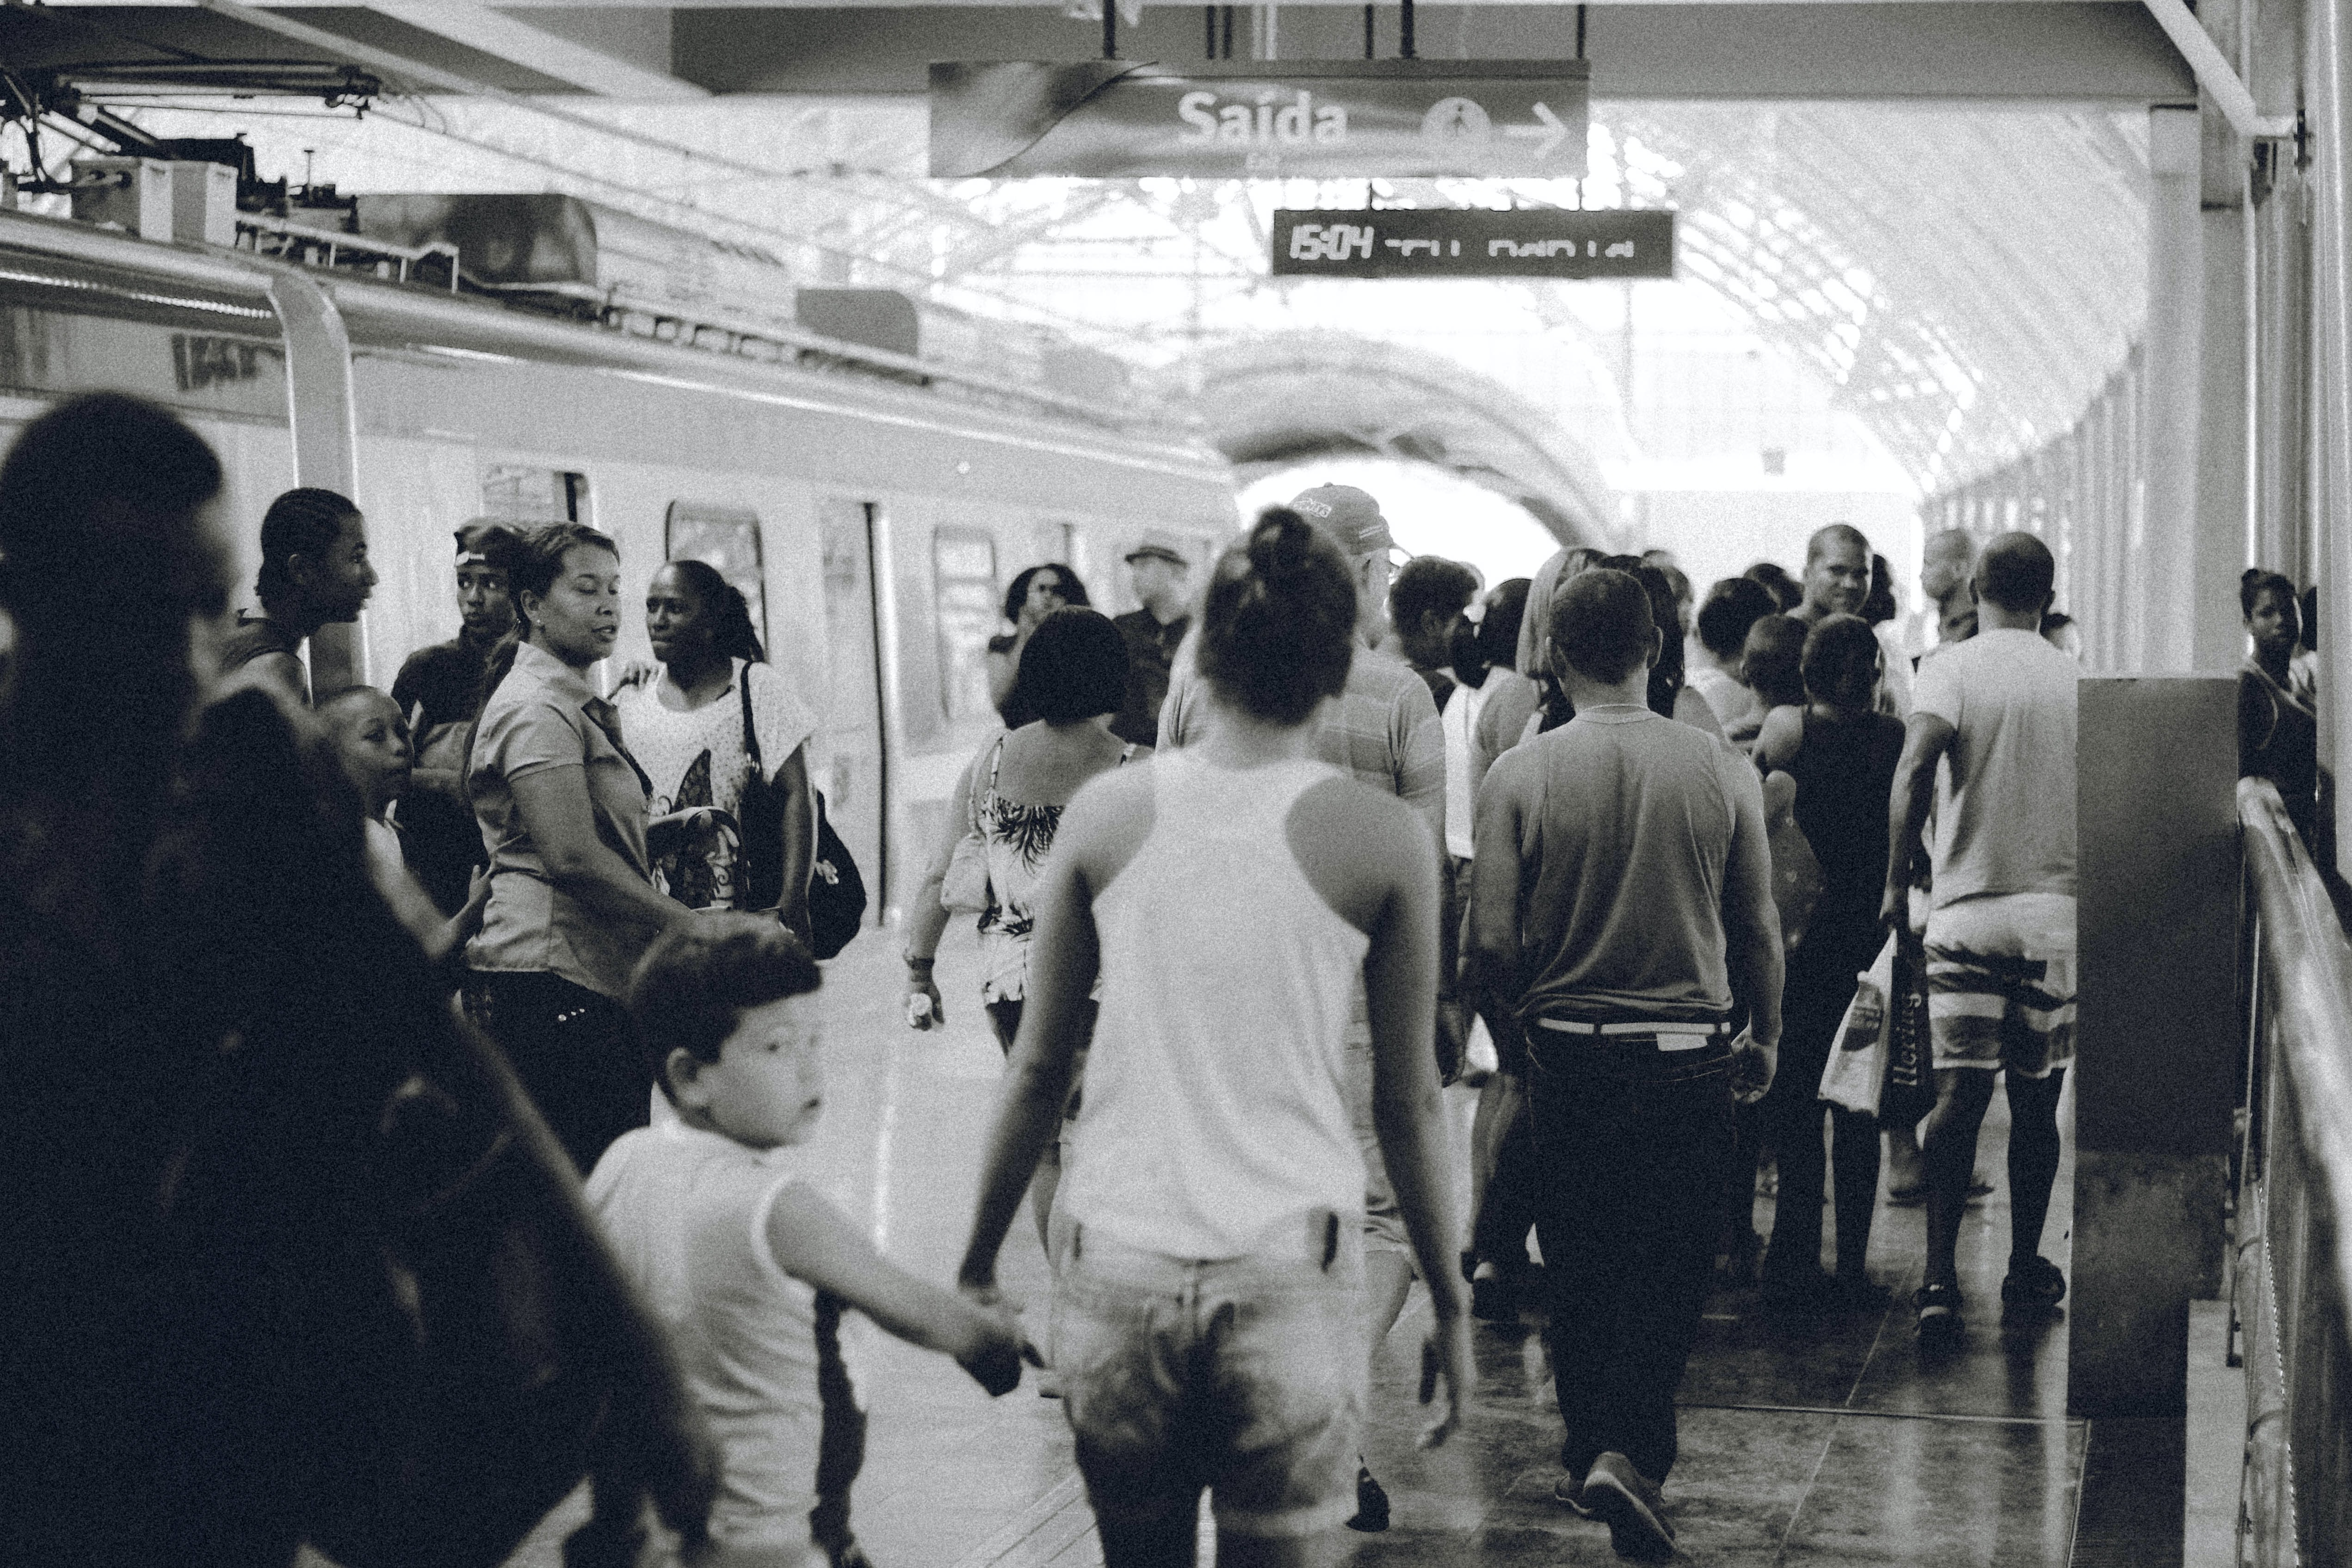 grayscaled photo of crowd on subway